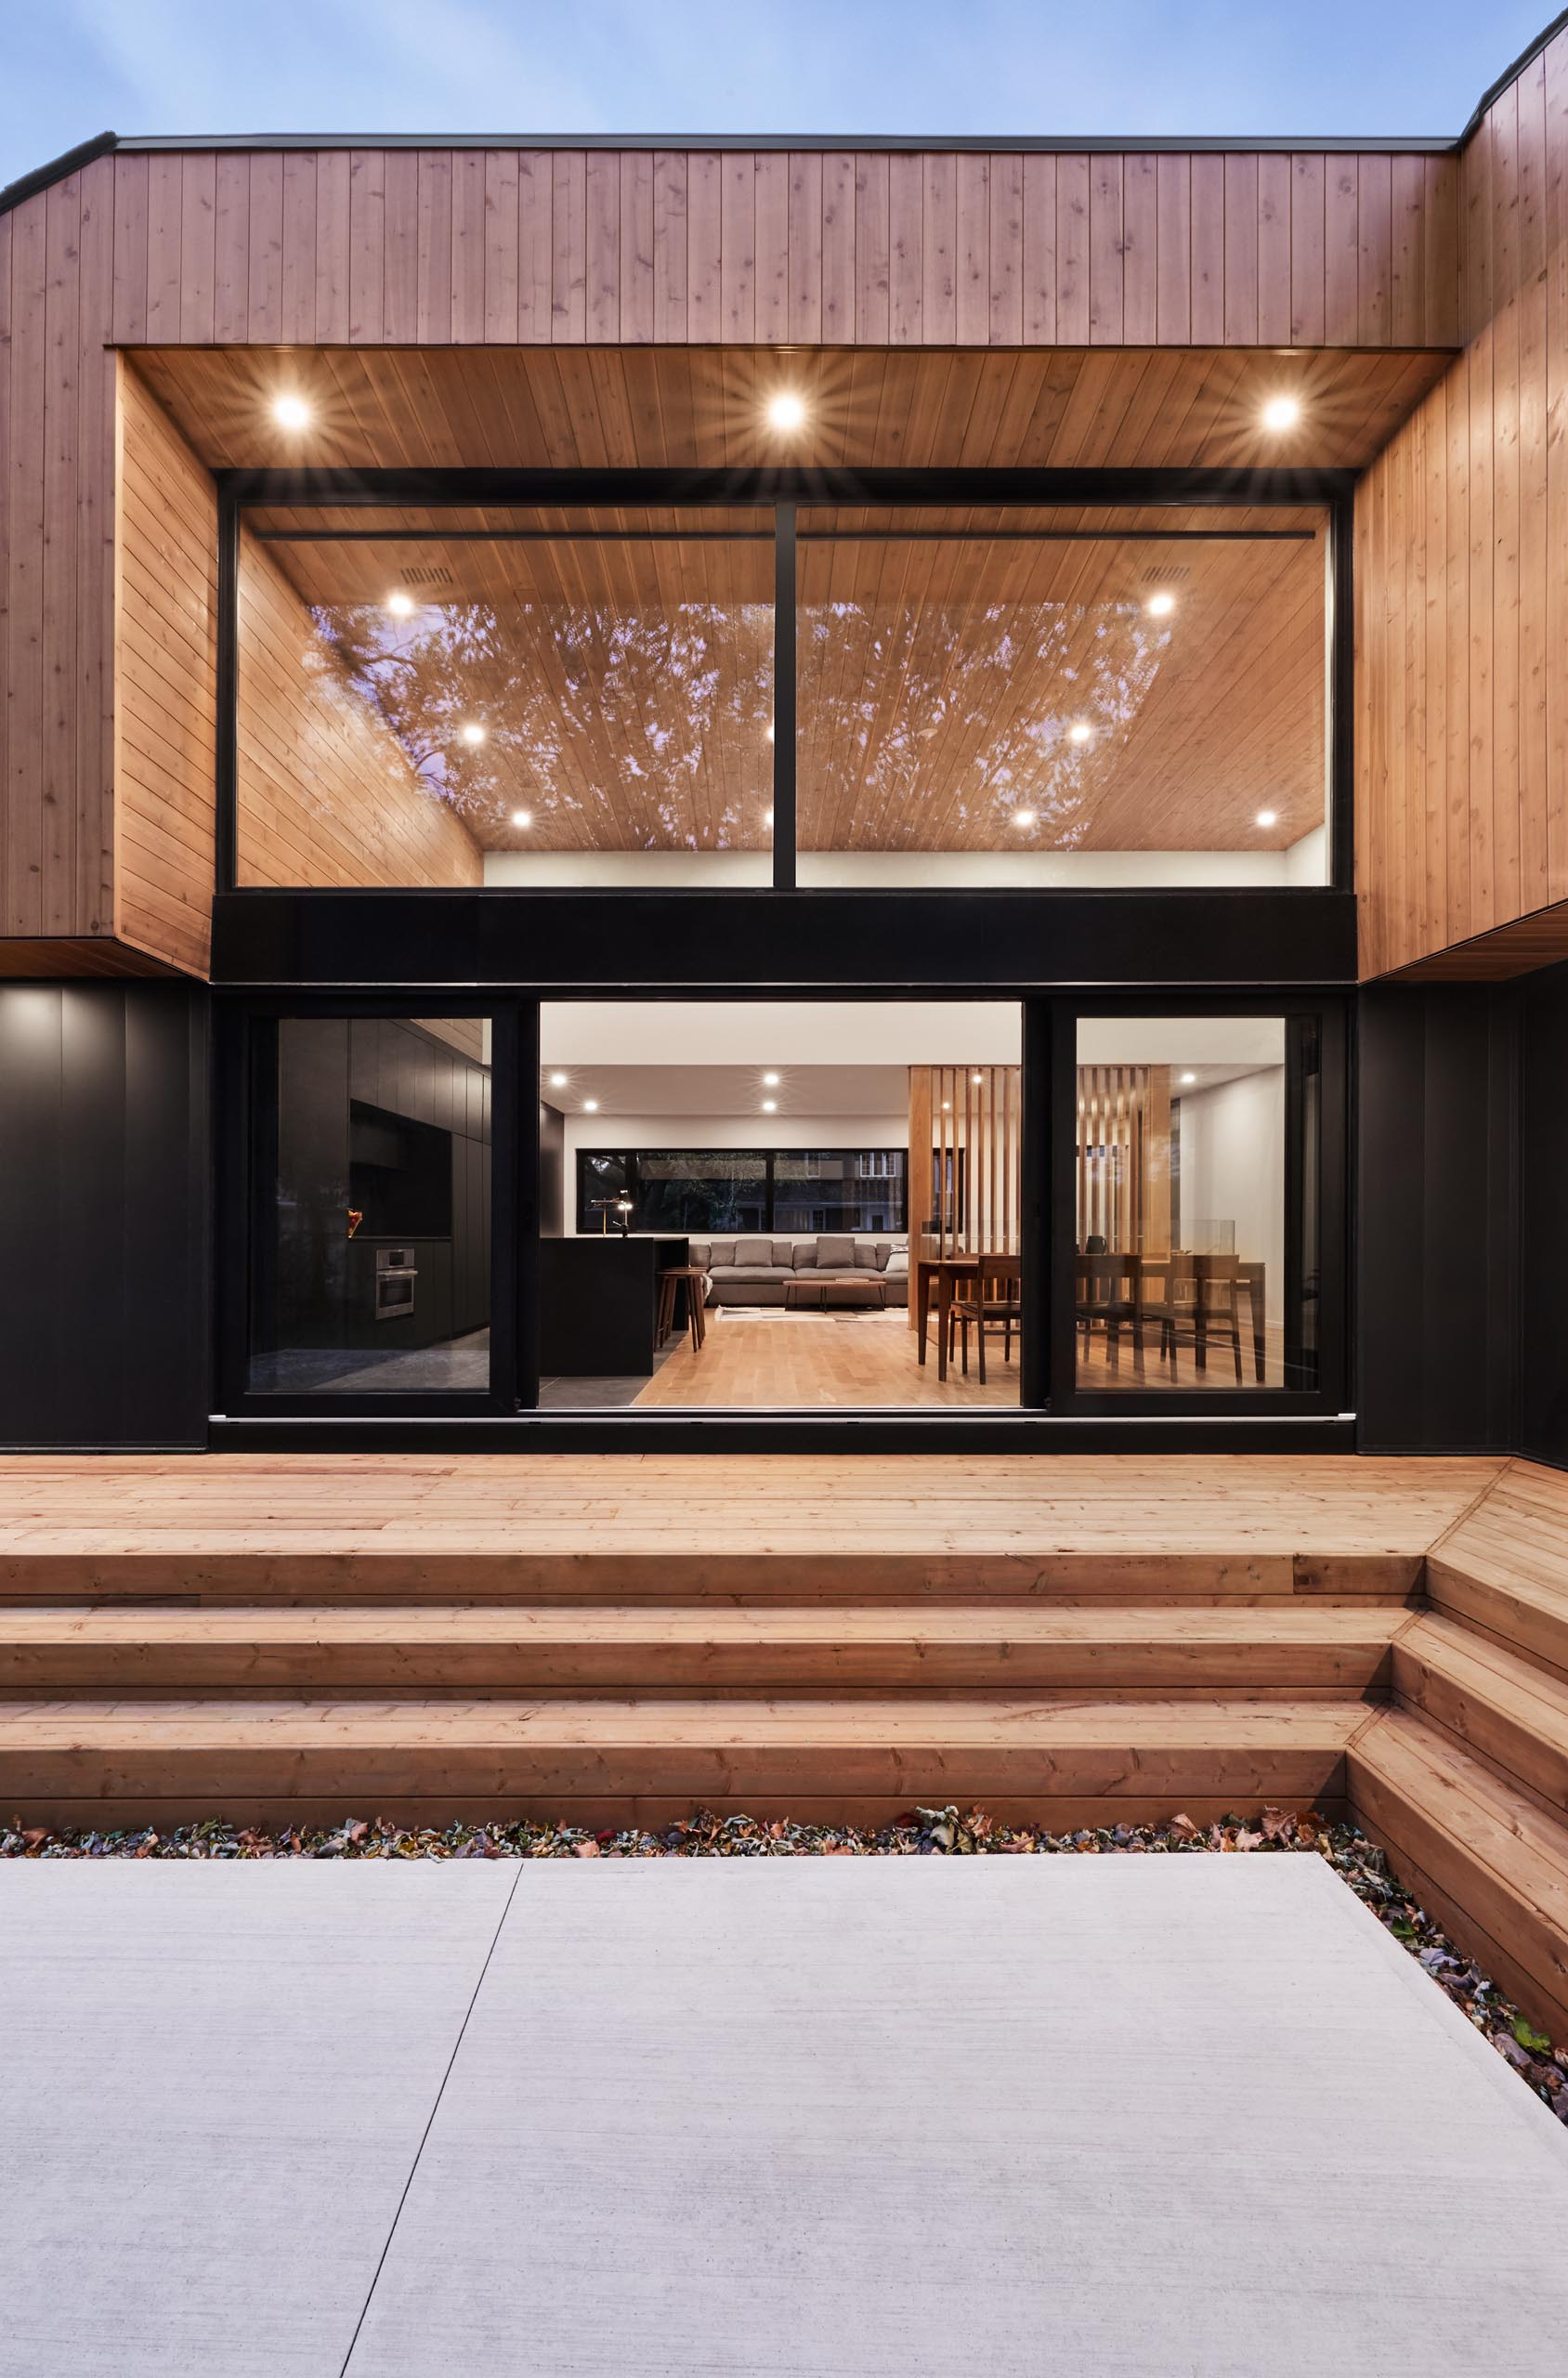 A modern home with high ceilings, and a black framed sliding lass door.